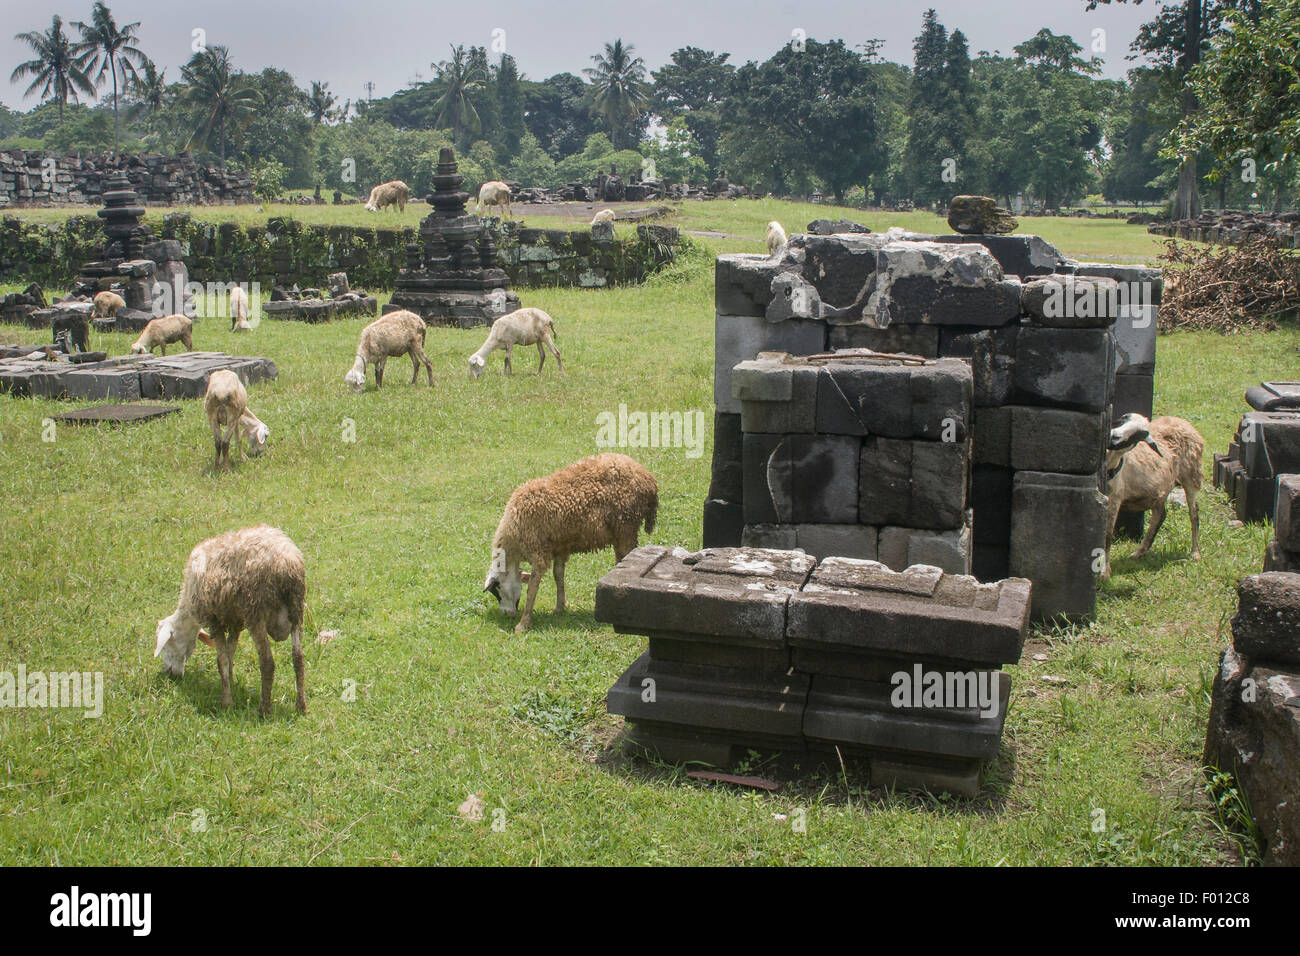 A herd of sheep wander the ruins of the 9th century Hindu temple, Prambanan (Java, Indonesia). - Stock Image